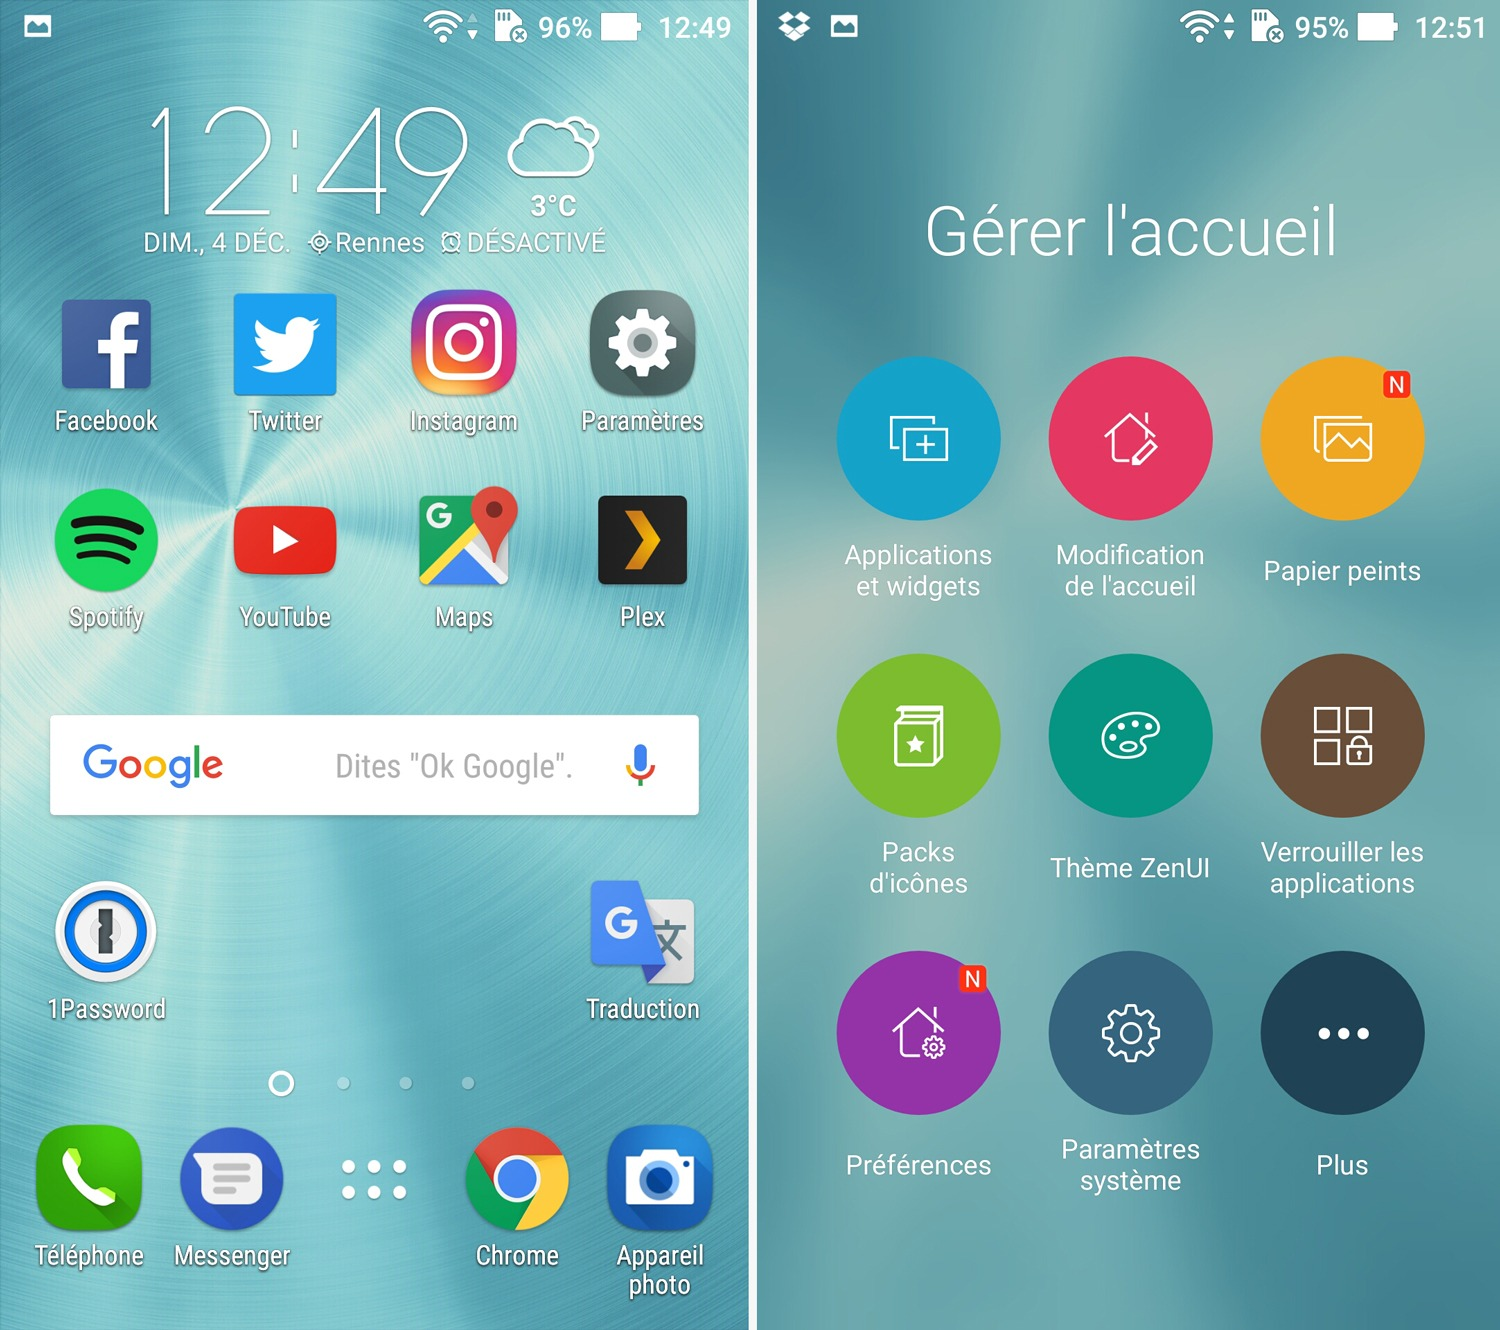 interface-zenui3-asus-zenfone